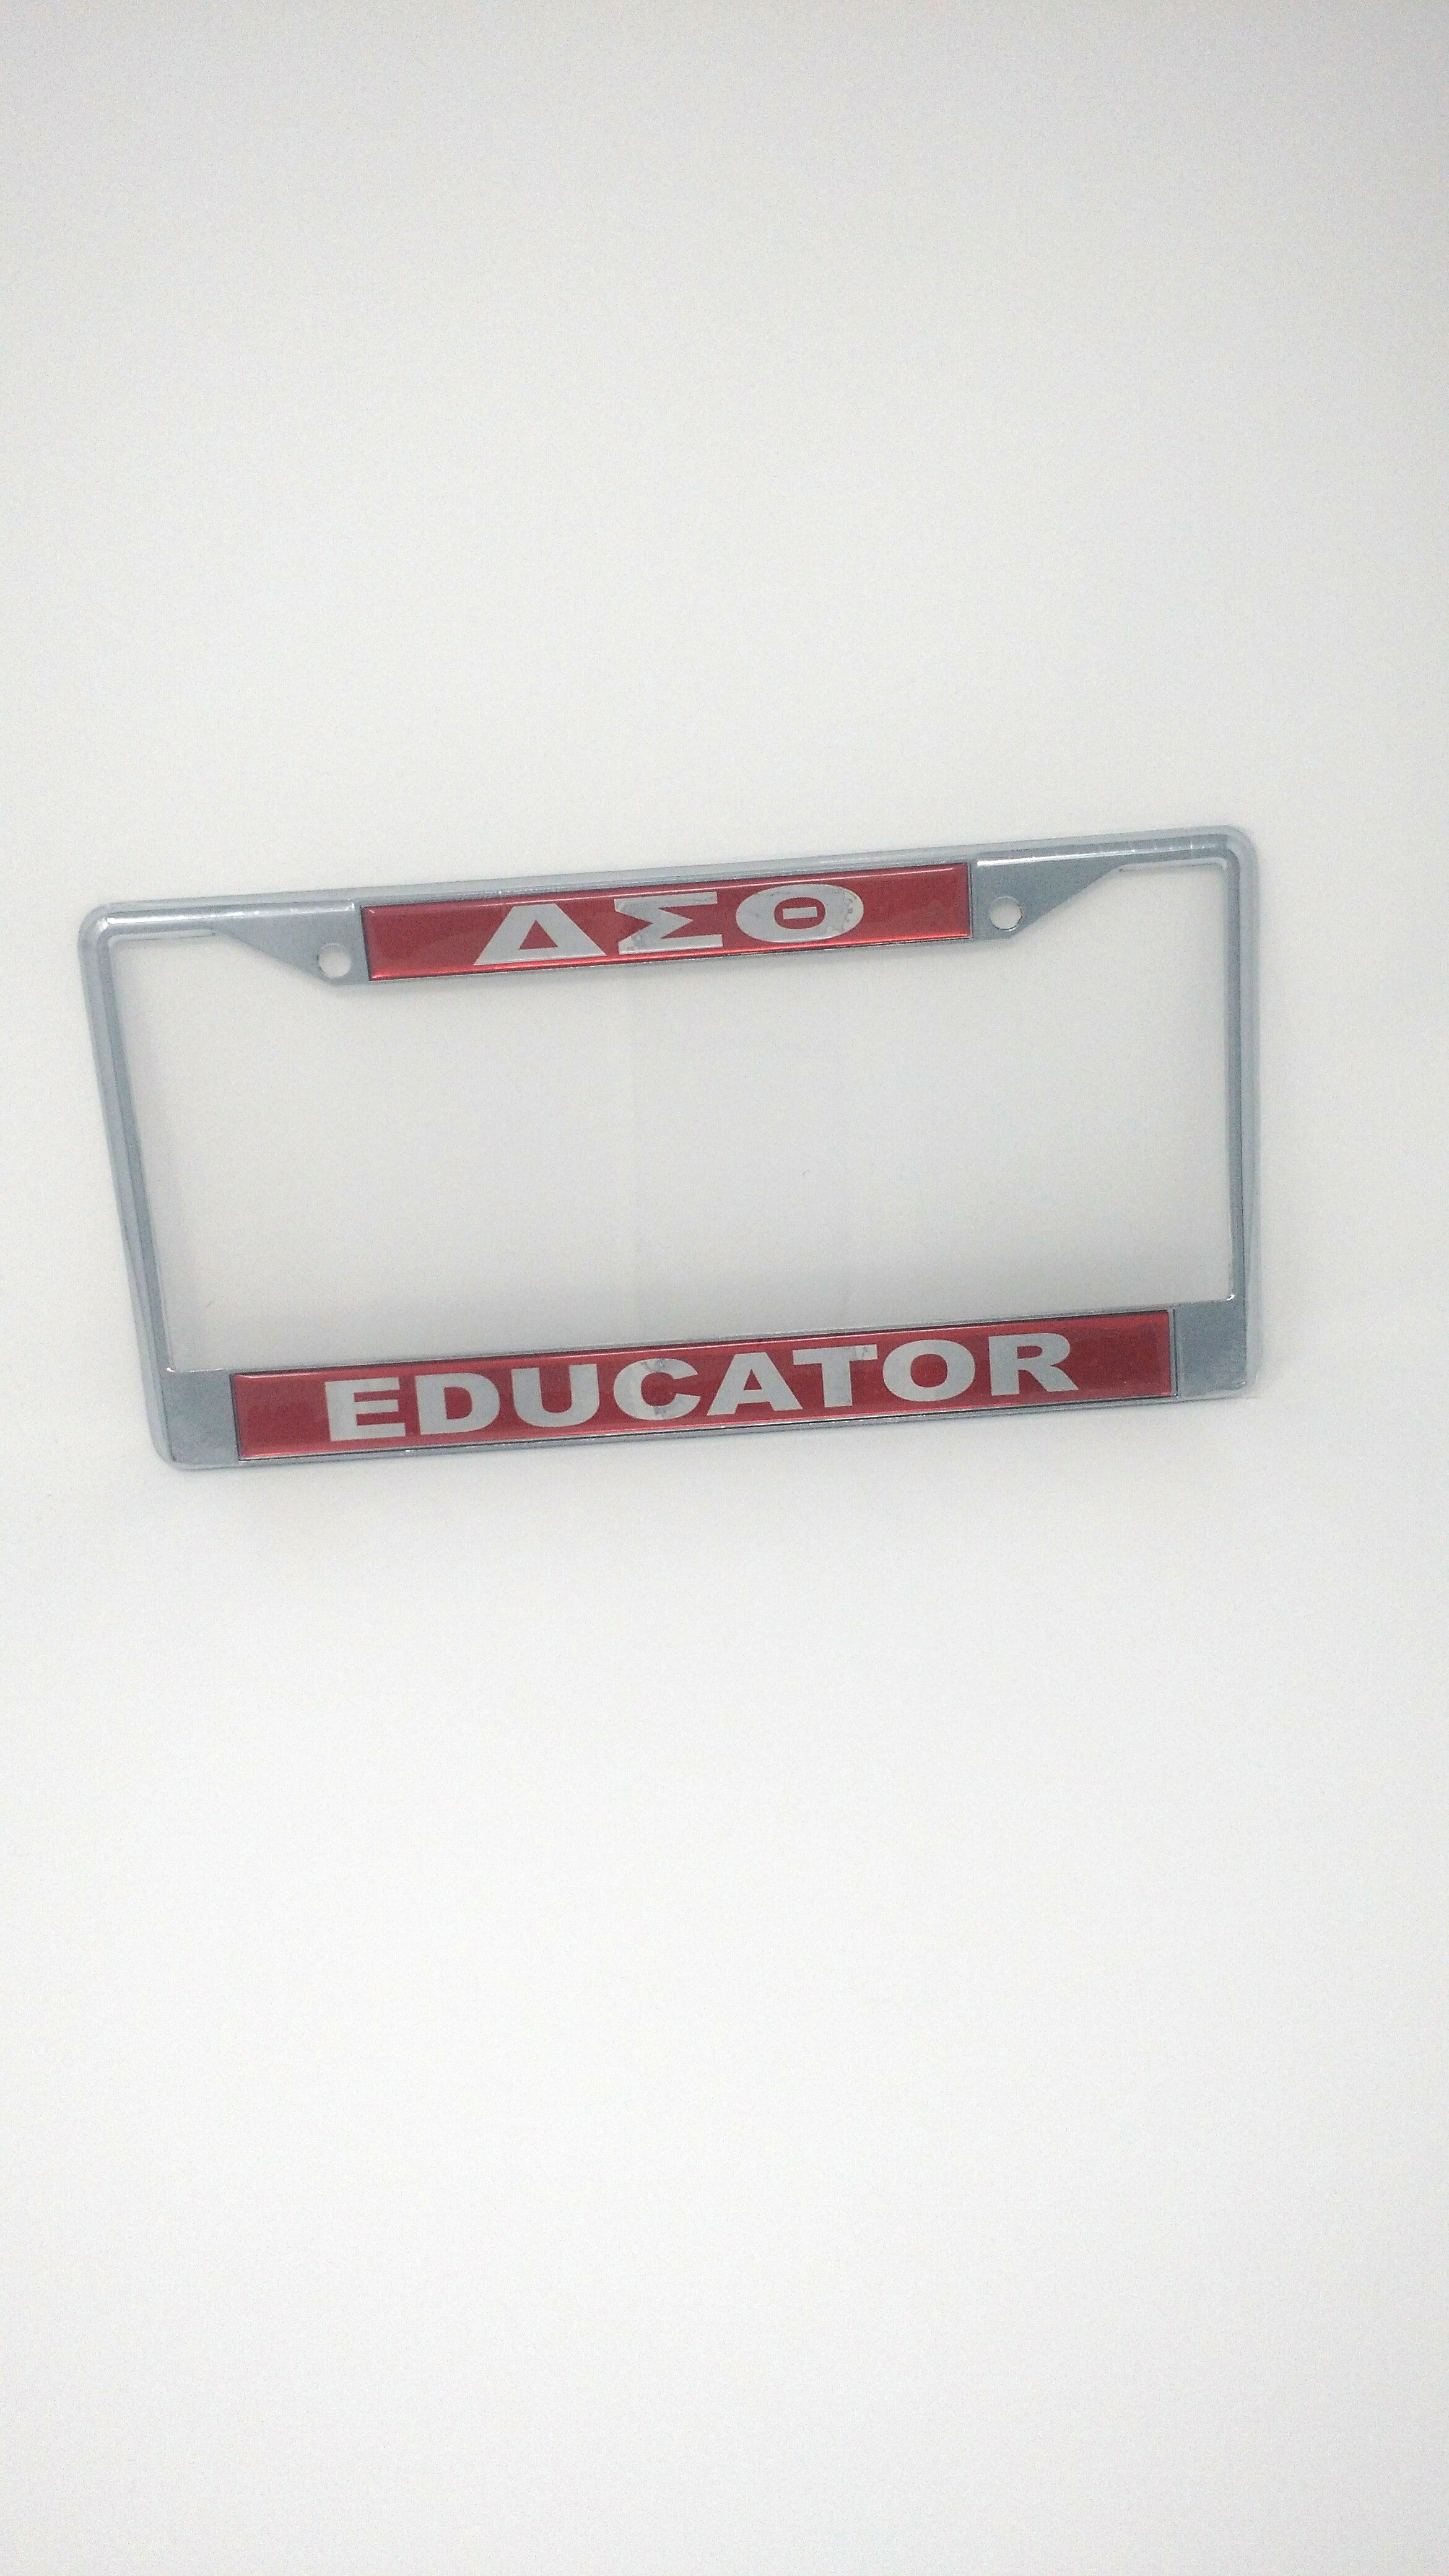 Delta Sigma Theta Mirror License Plate Frame – Educator